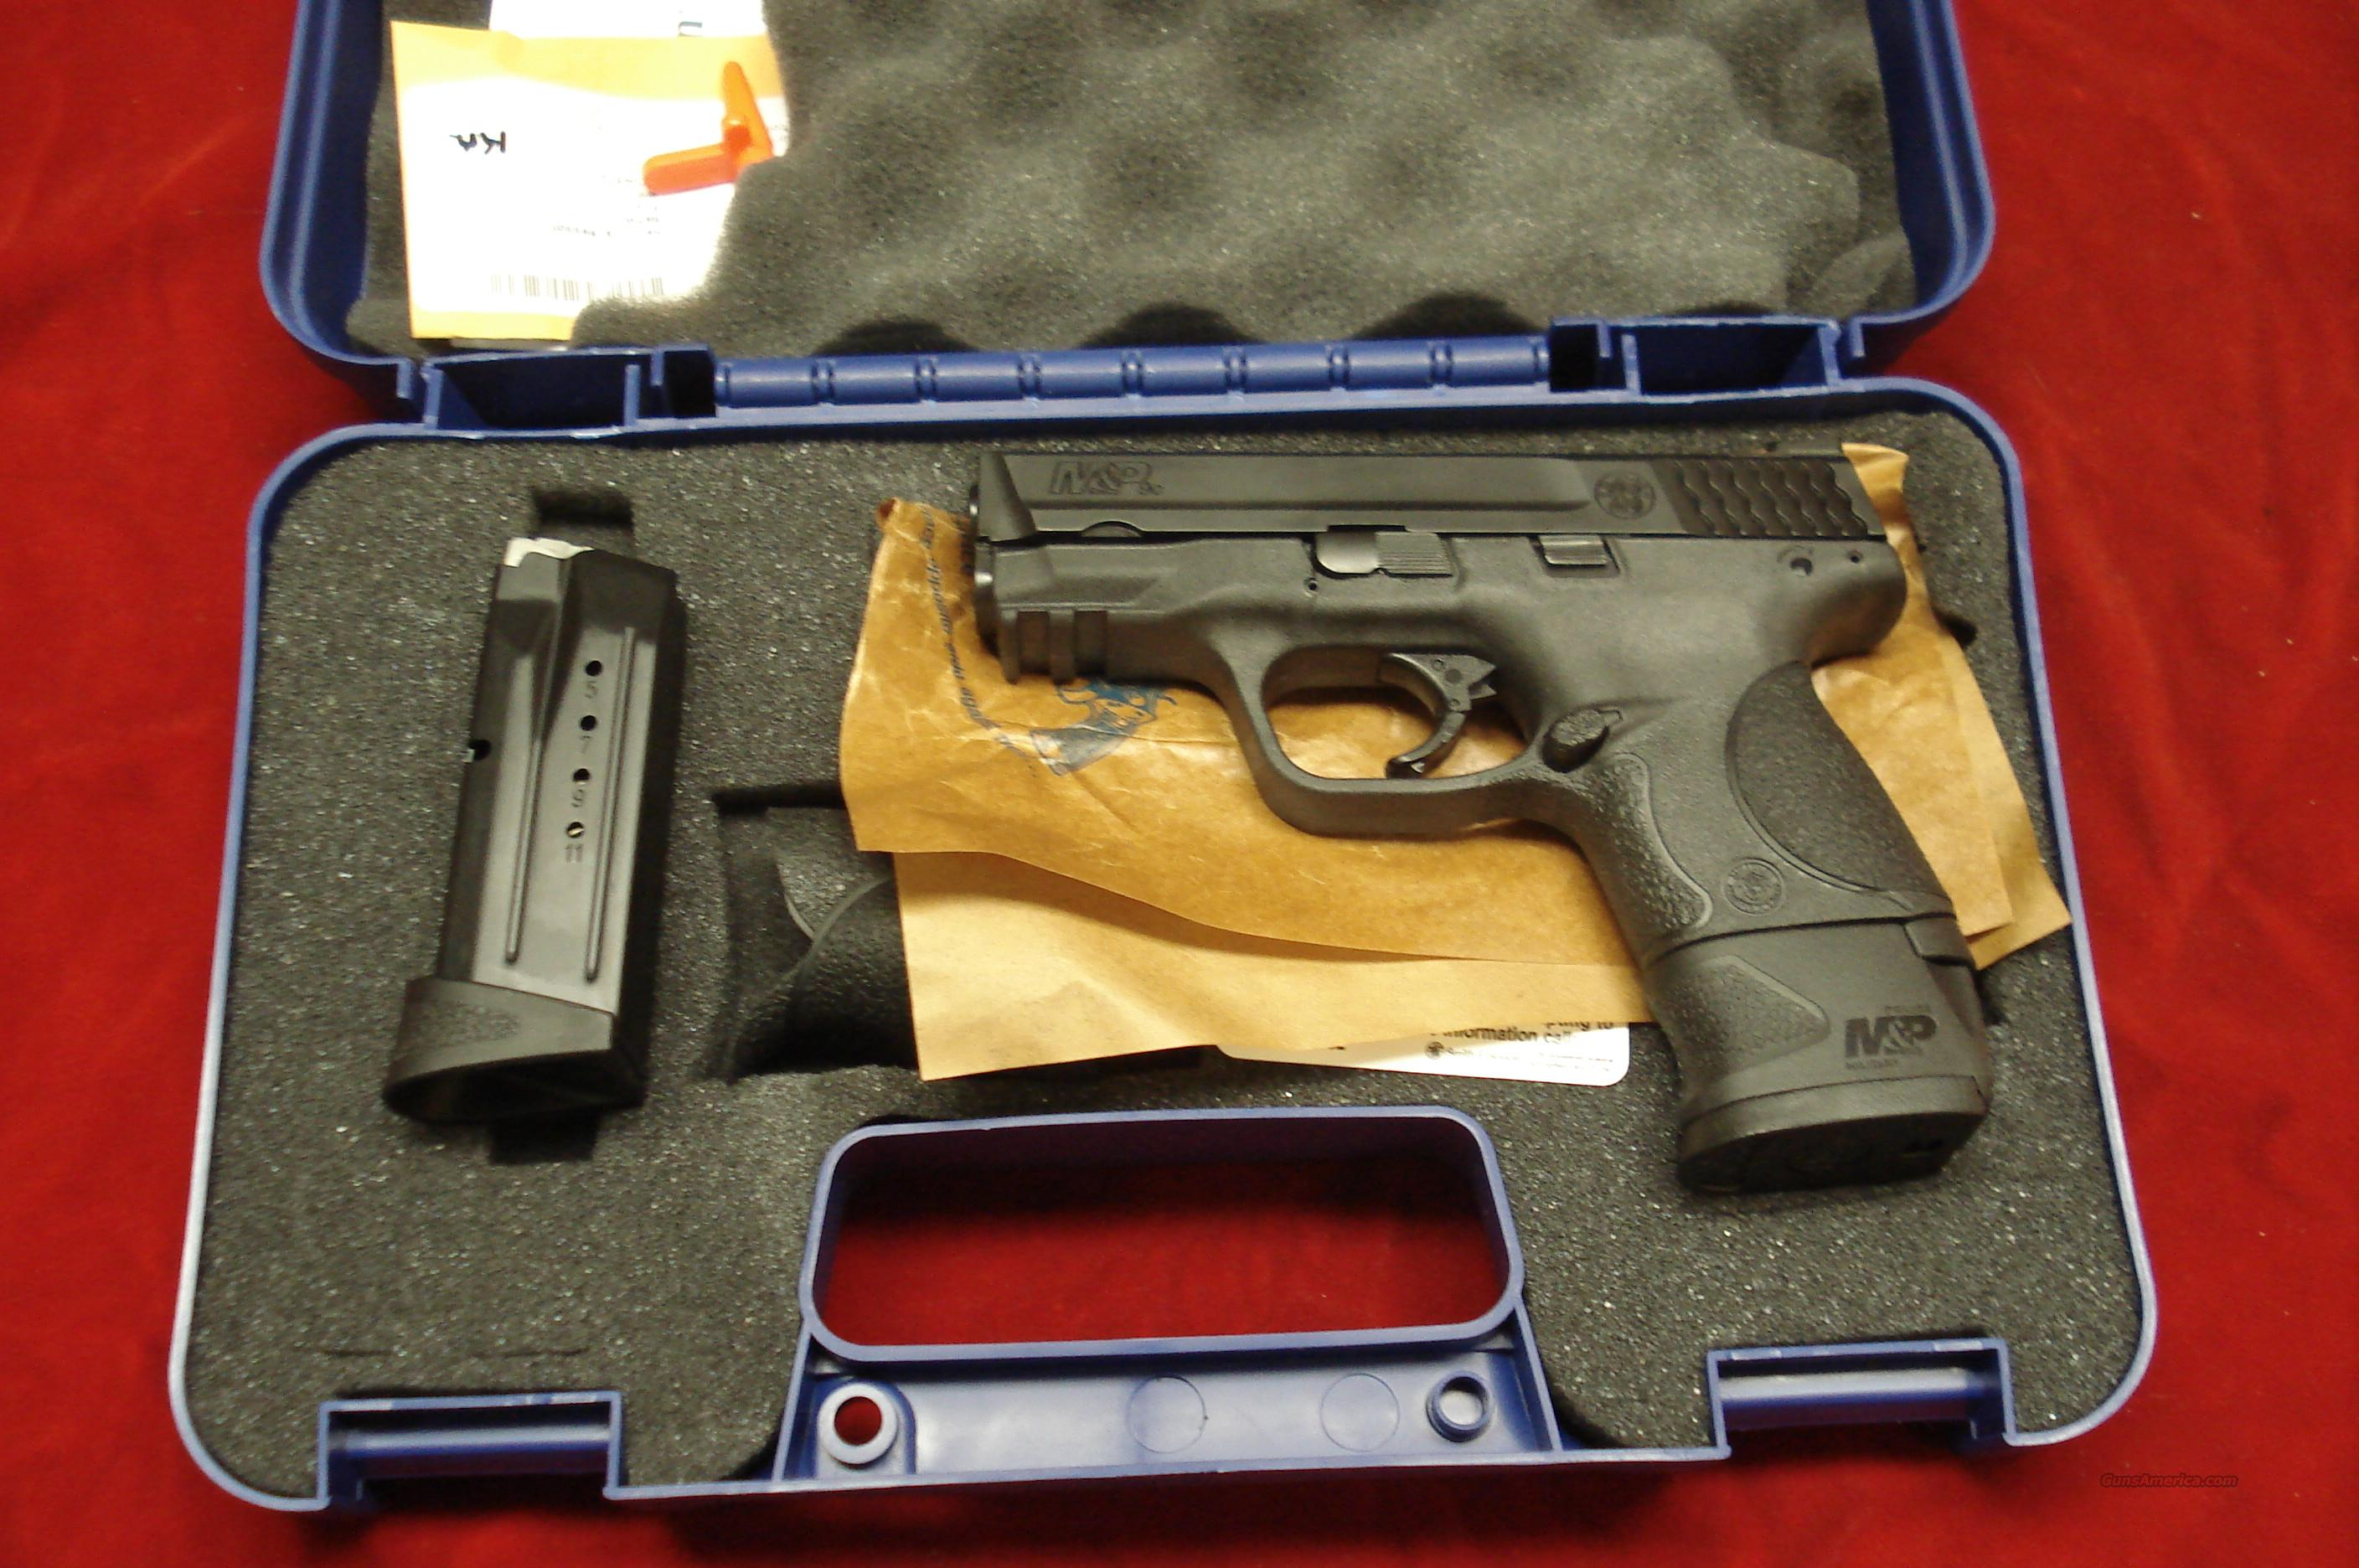 SMITH AND WESSON M&P COMPACT 9MM W/EXTENDED MAGAZINE NEW   Guns > Pistols > Smith & Wesson Pistols - Autos > Polymer Frame